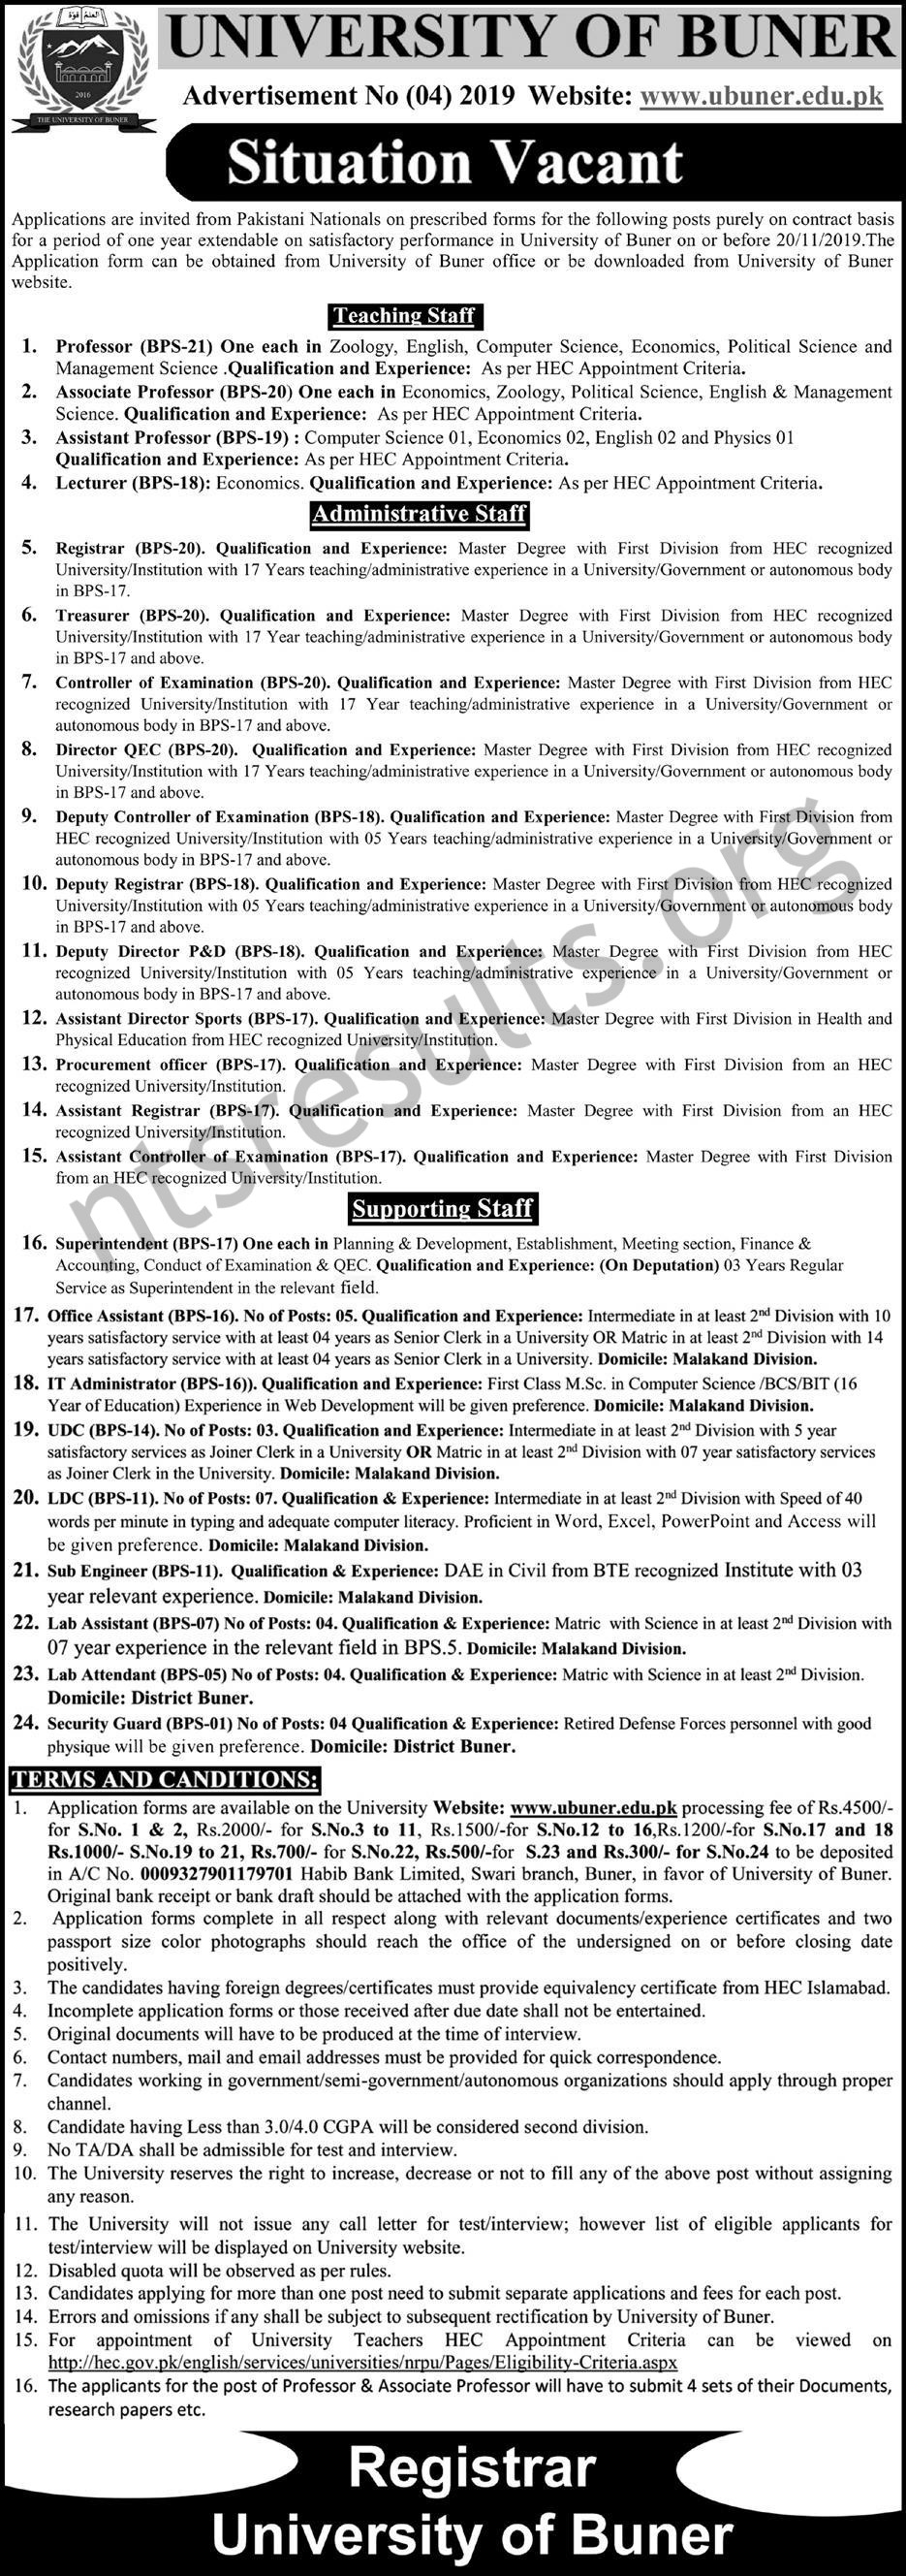 University of Buner Jobs UOB Teaching and Administrative BPS 01 To BPS 21